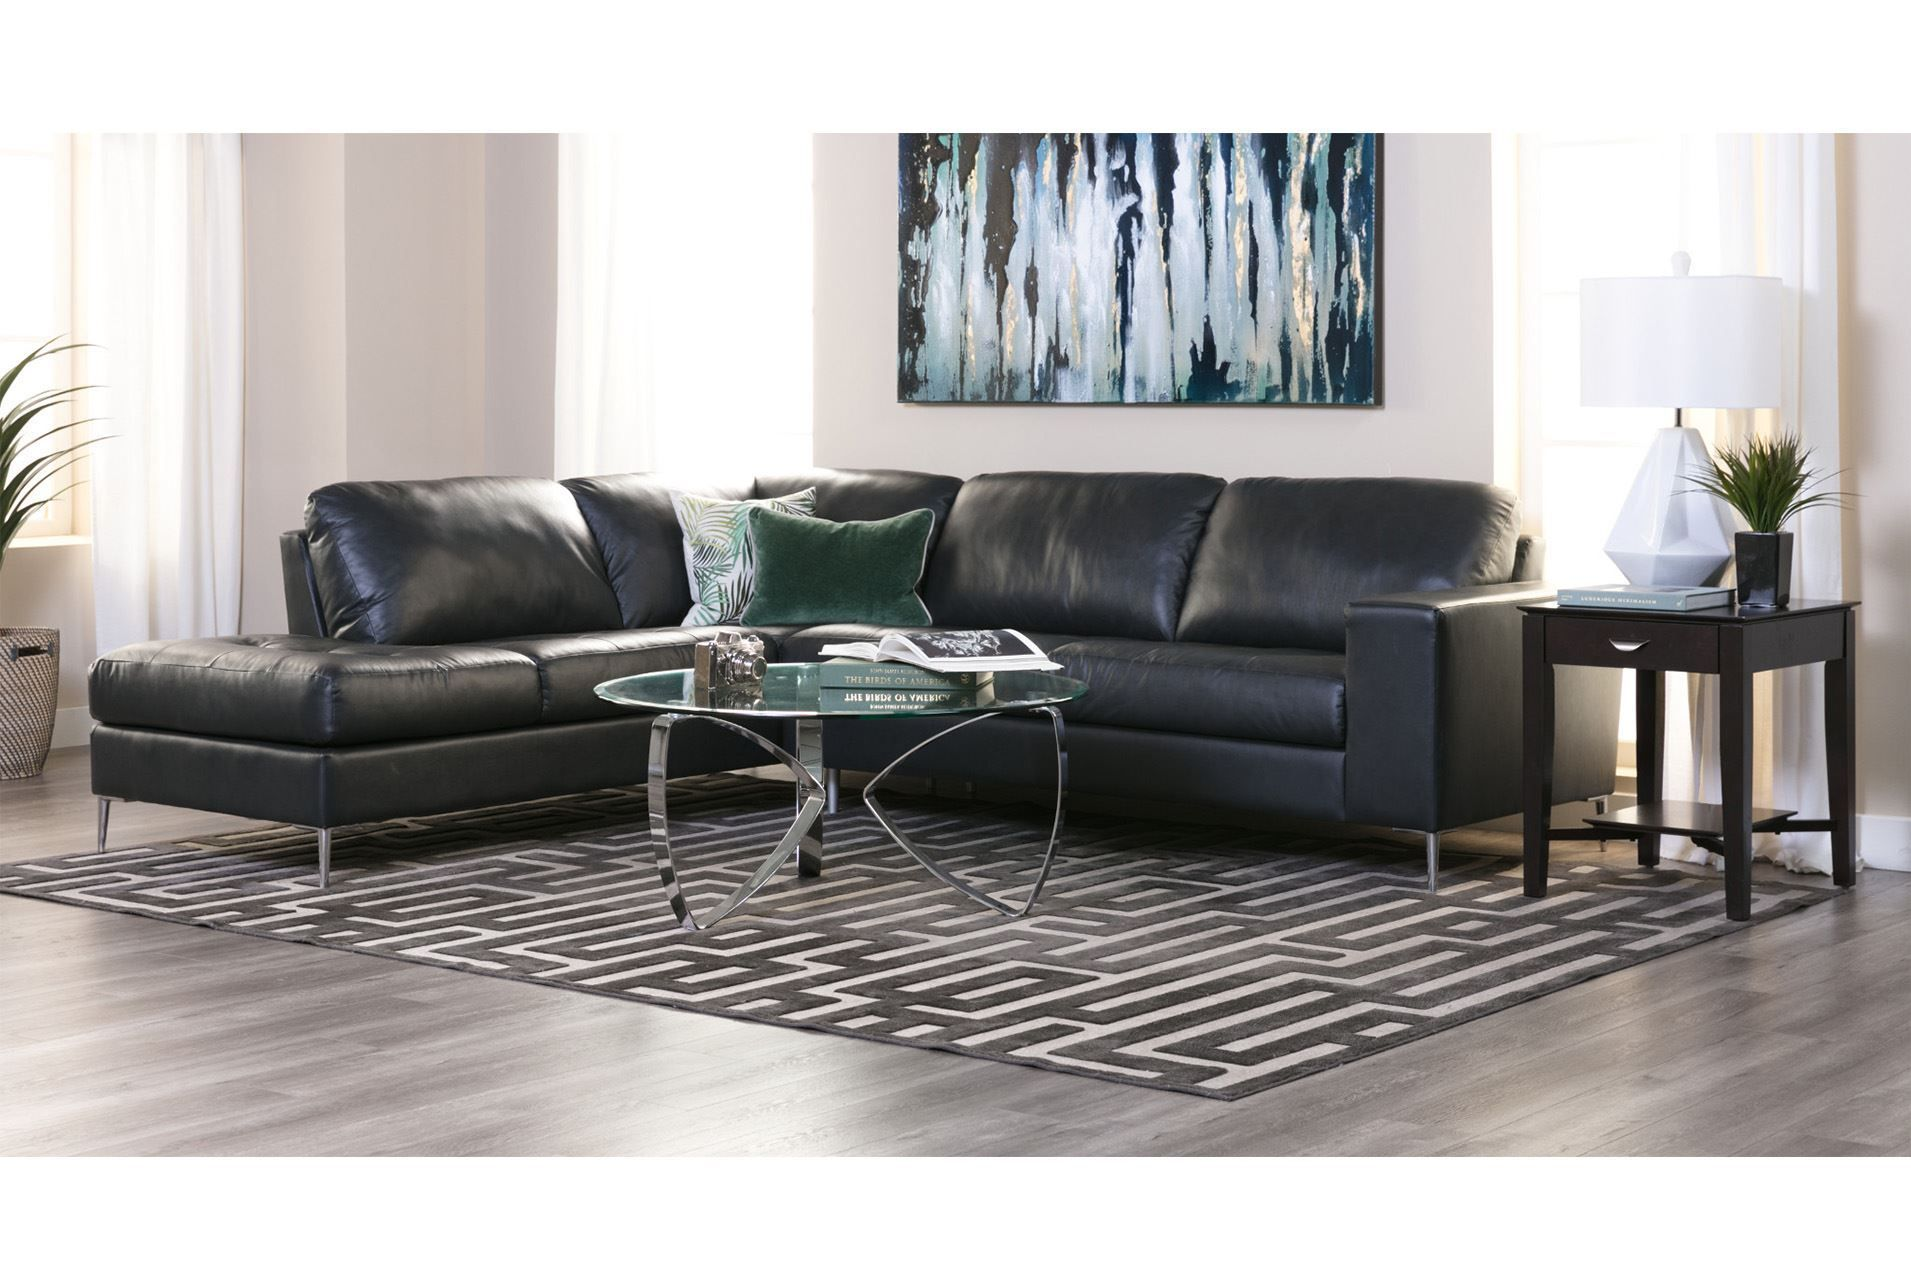 Remarkable Micah Anthracite 2 Piece Sectional W Laf Chaise 360 Inzonedesignstudio Interior Chair Design Inzonedesignstudiocom